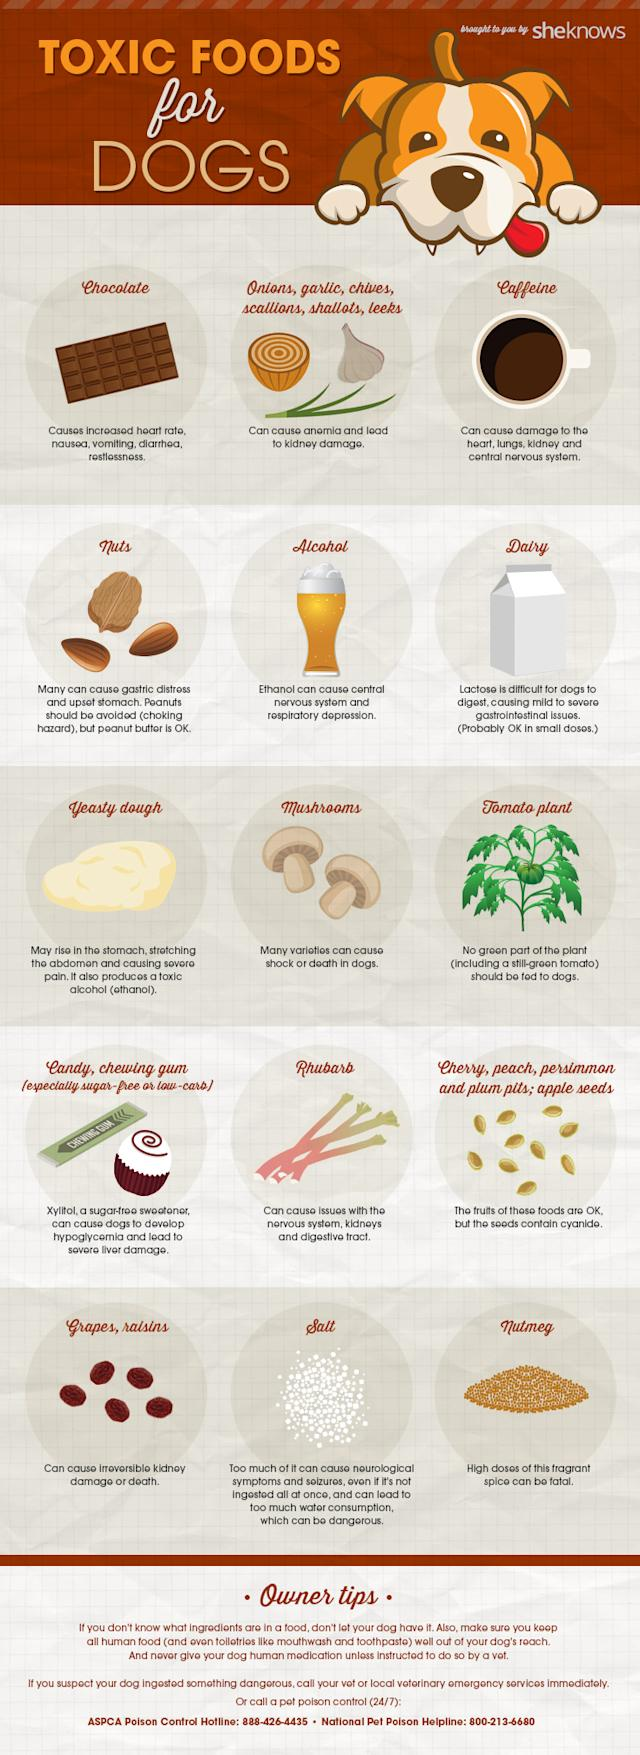 infographic showing what foods are toxic to dogs